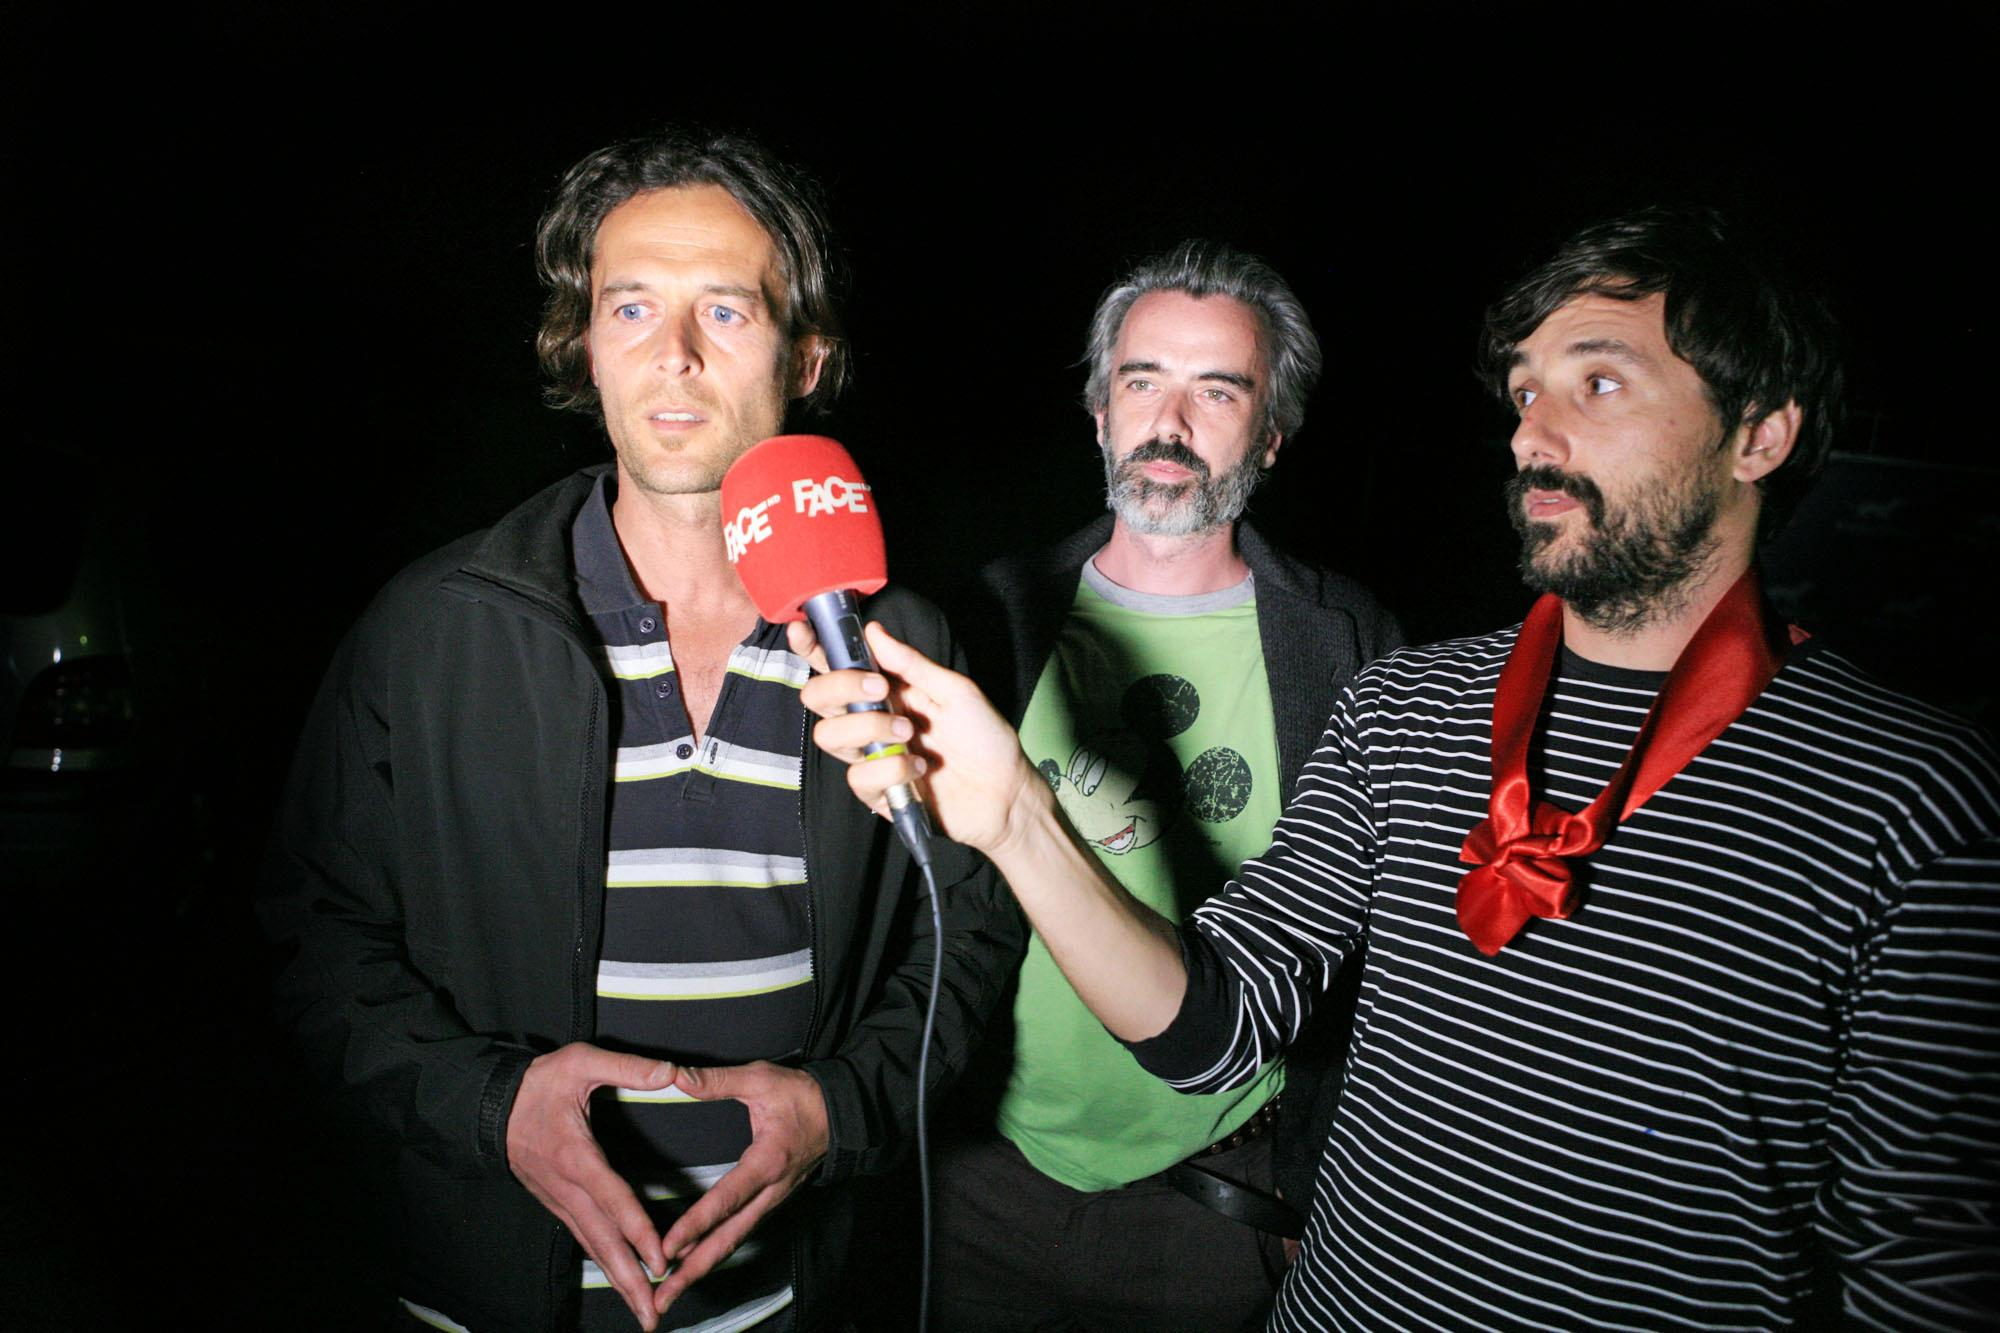 serbian tv interviews after winning film price